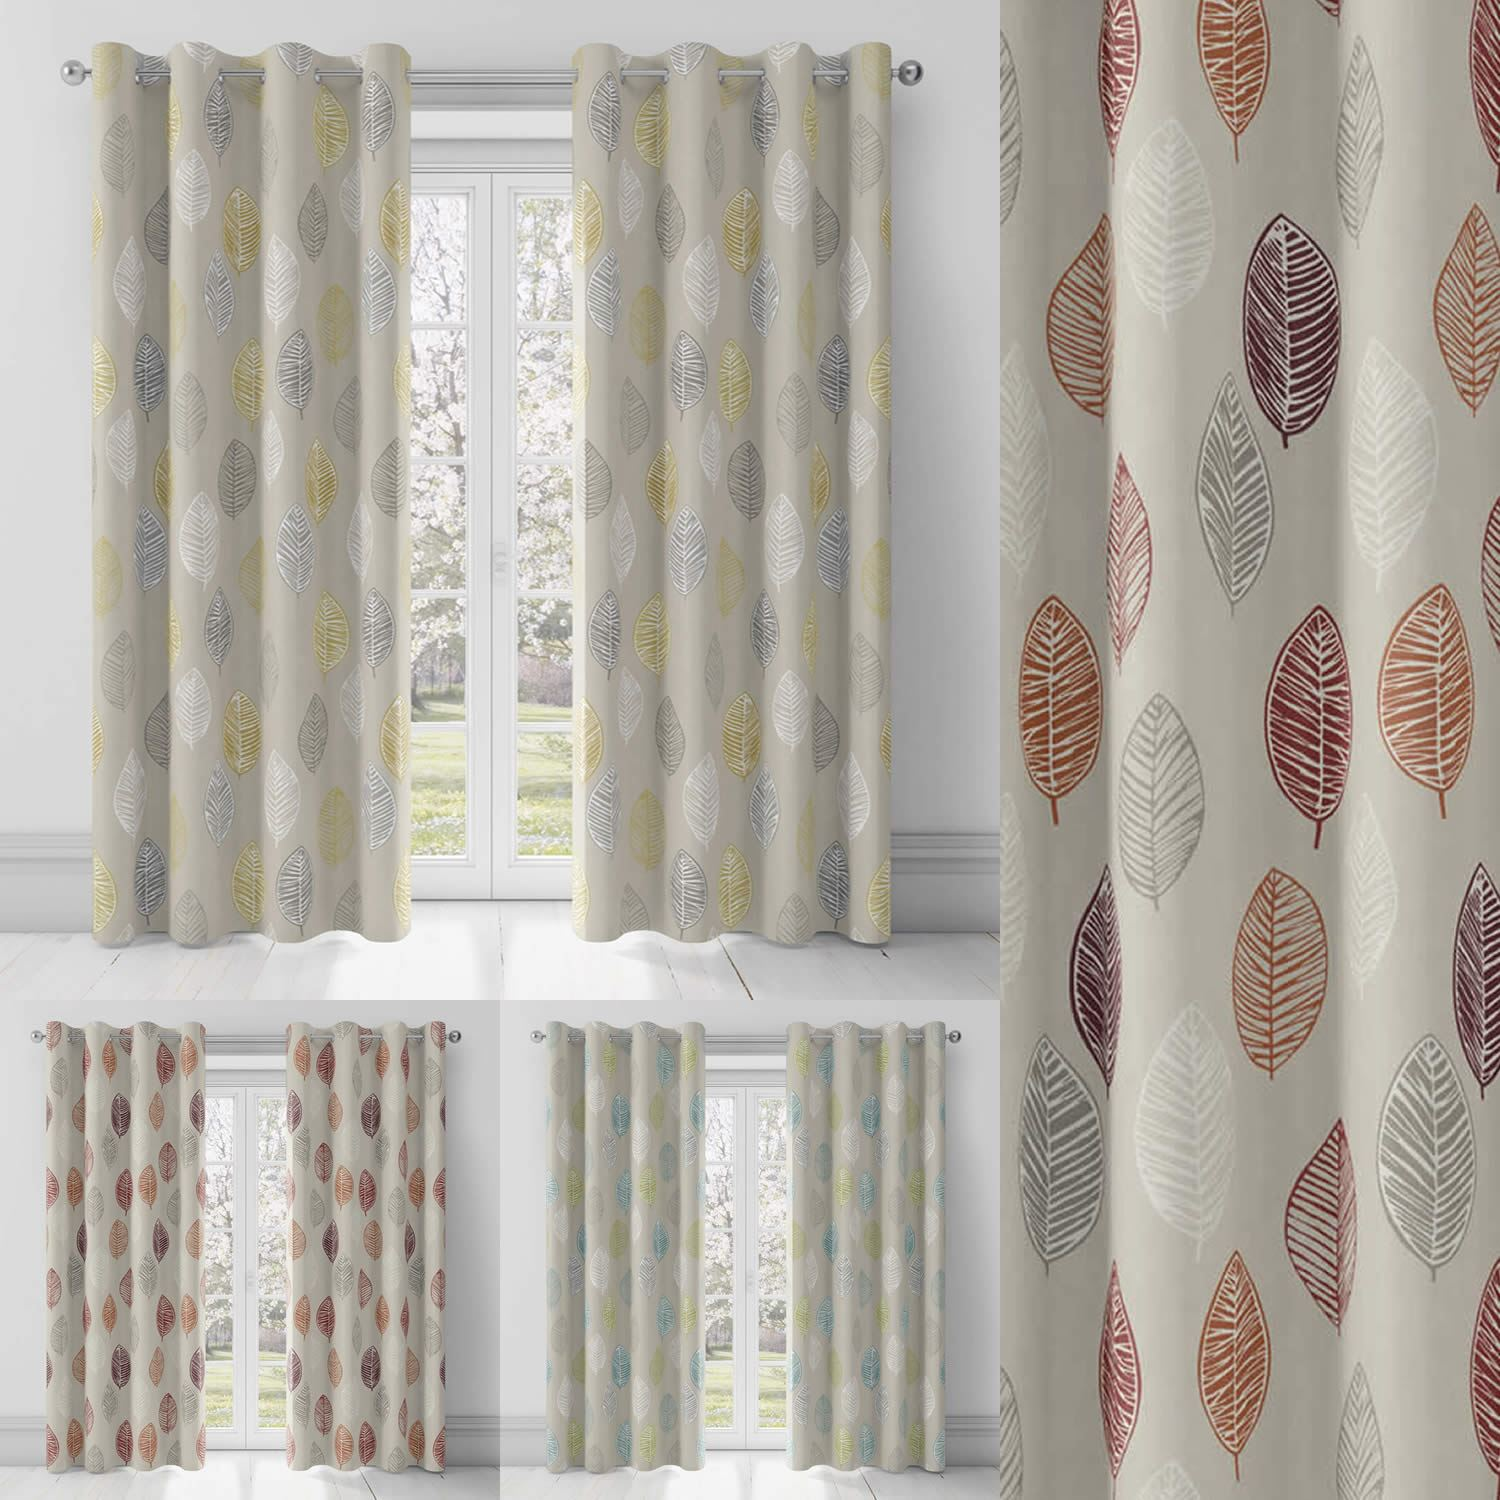 Scandinavian Ready Made Curtains Details About Skandi Leaf Lined Eyelet Curtains Geometric Leaf Print Ready Made Ring Top Pairs